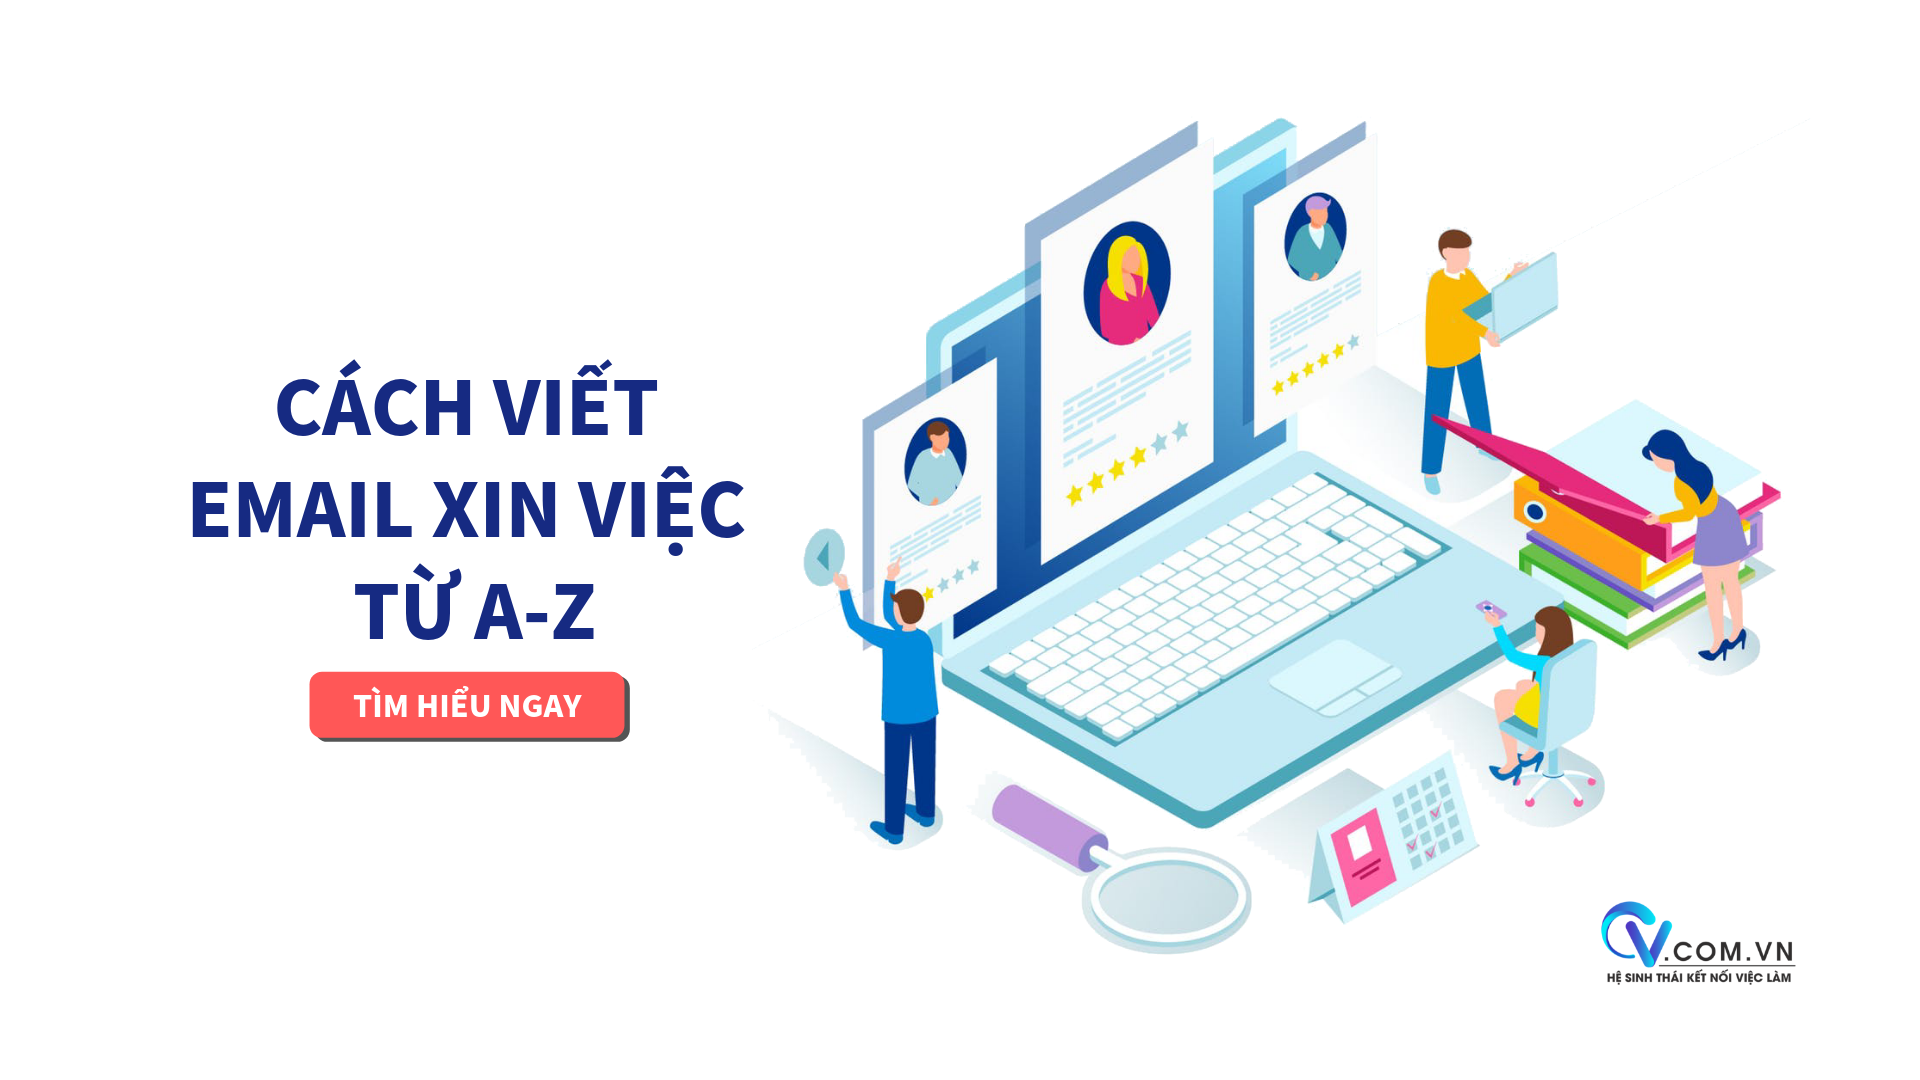 Cach Viet Email Xin Viec